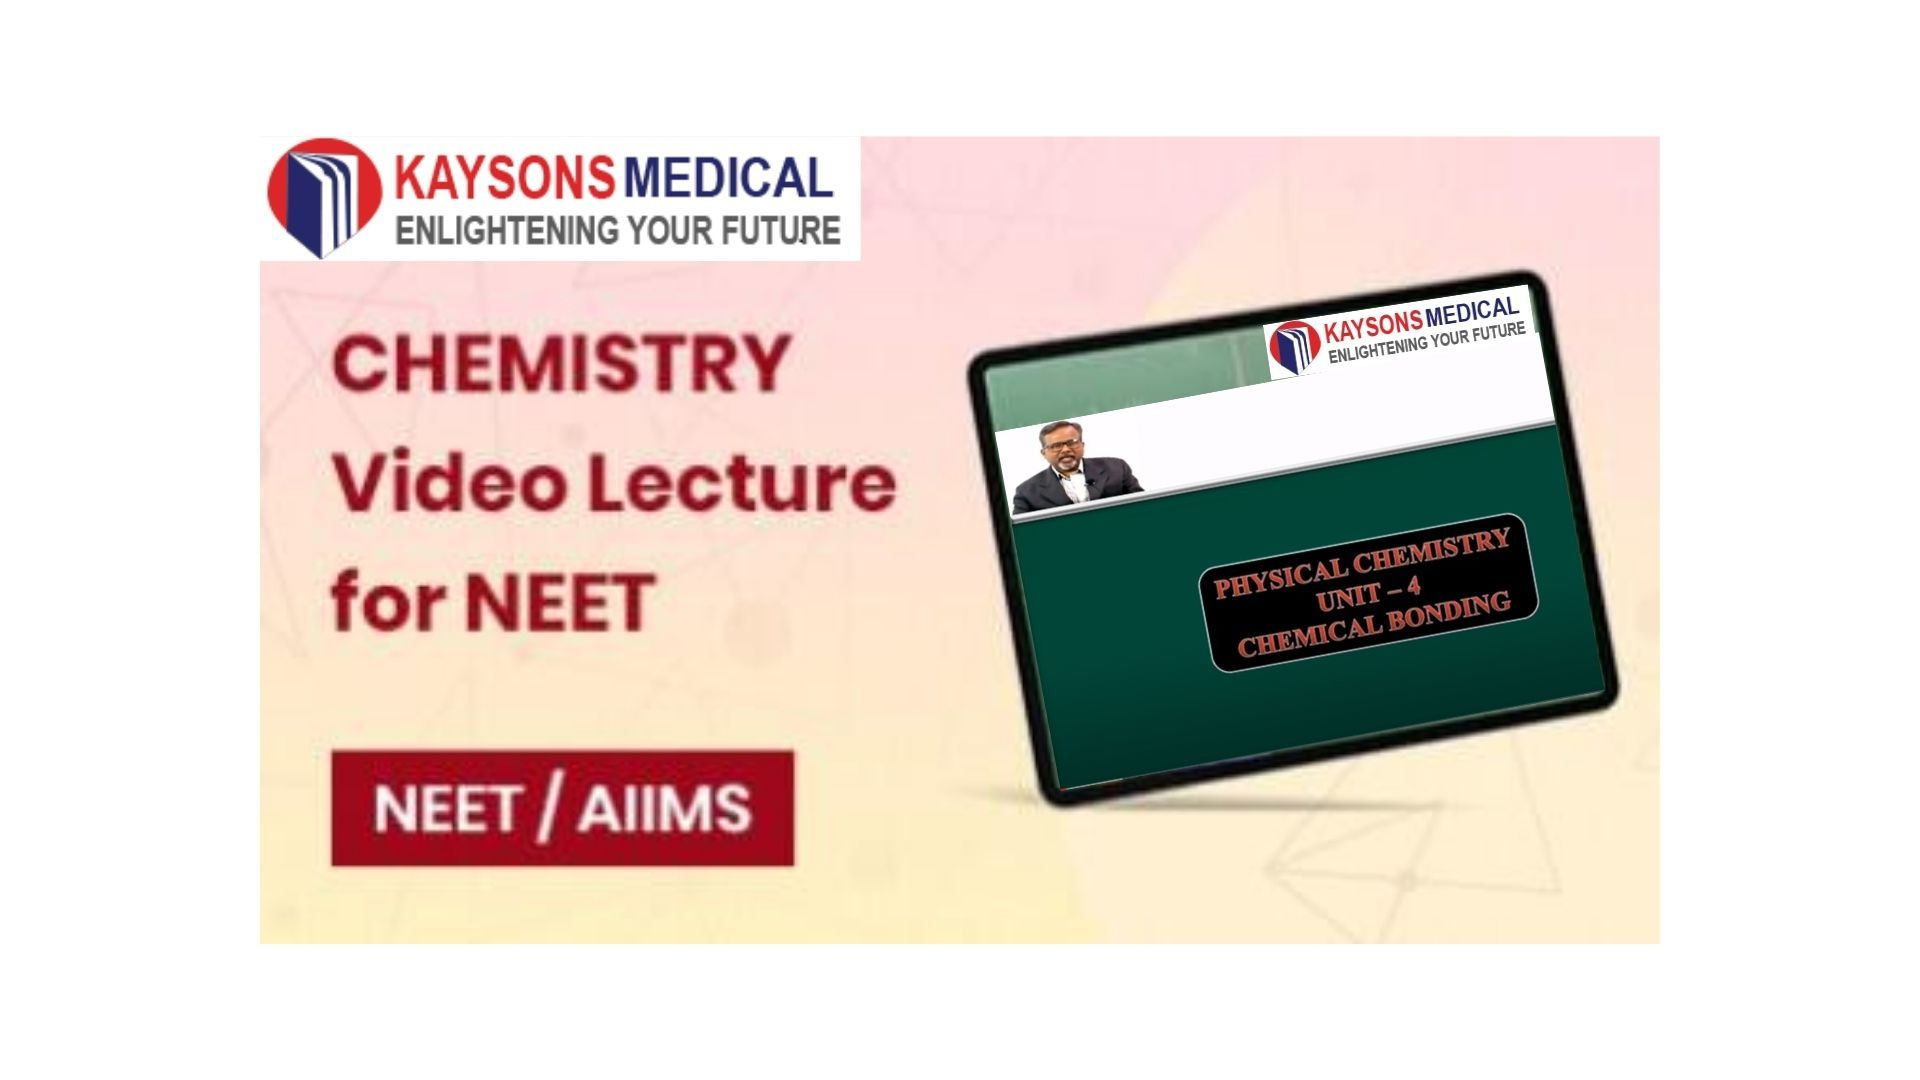 Kaysons Medical Chemistry video lectures for NEET are the best you can choose to prepare for the NEET exam. Most of the concepts in chemistry are abstract in nature which makes them difficult. Kaysons NEET Chemistry video lectures aim to build a strong foundation. The video lectures are designed such that the core concept is explained thoroughly with the help of rich visuals and 2D /3D animations.